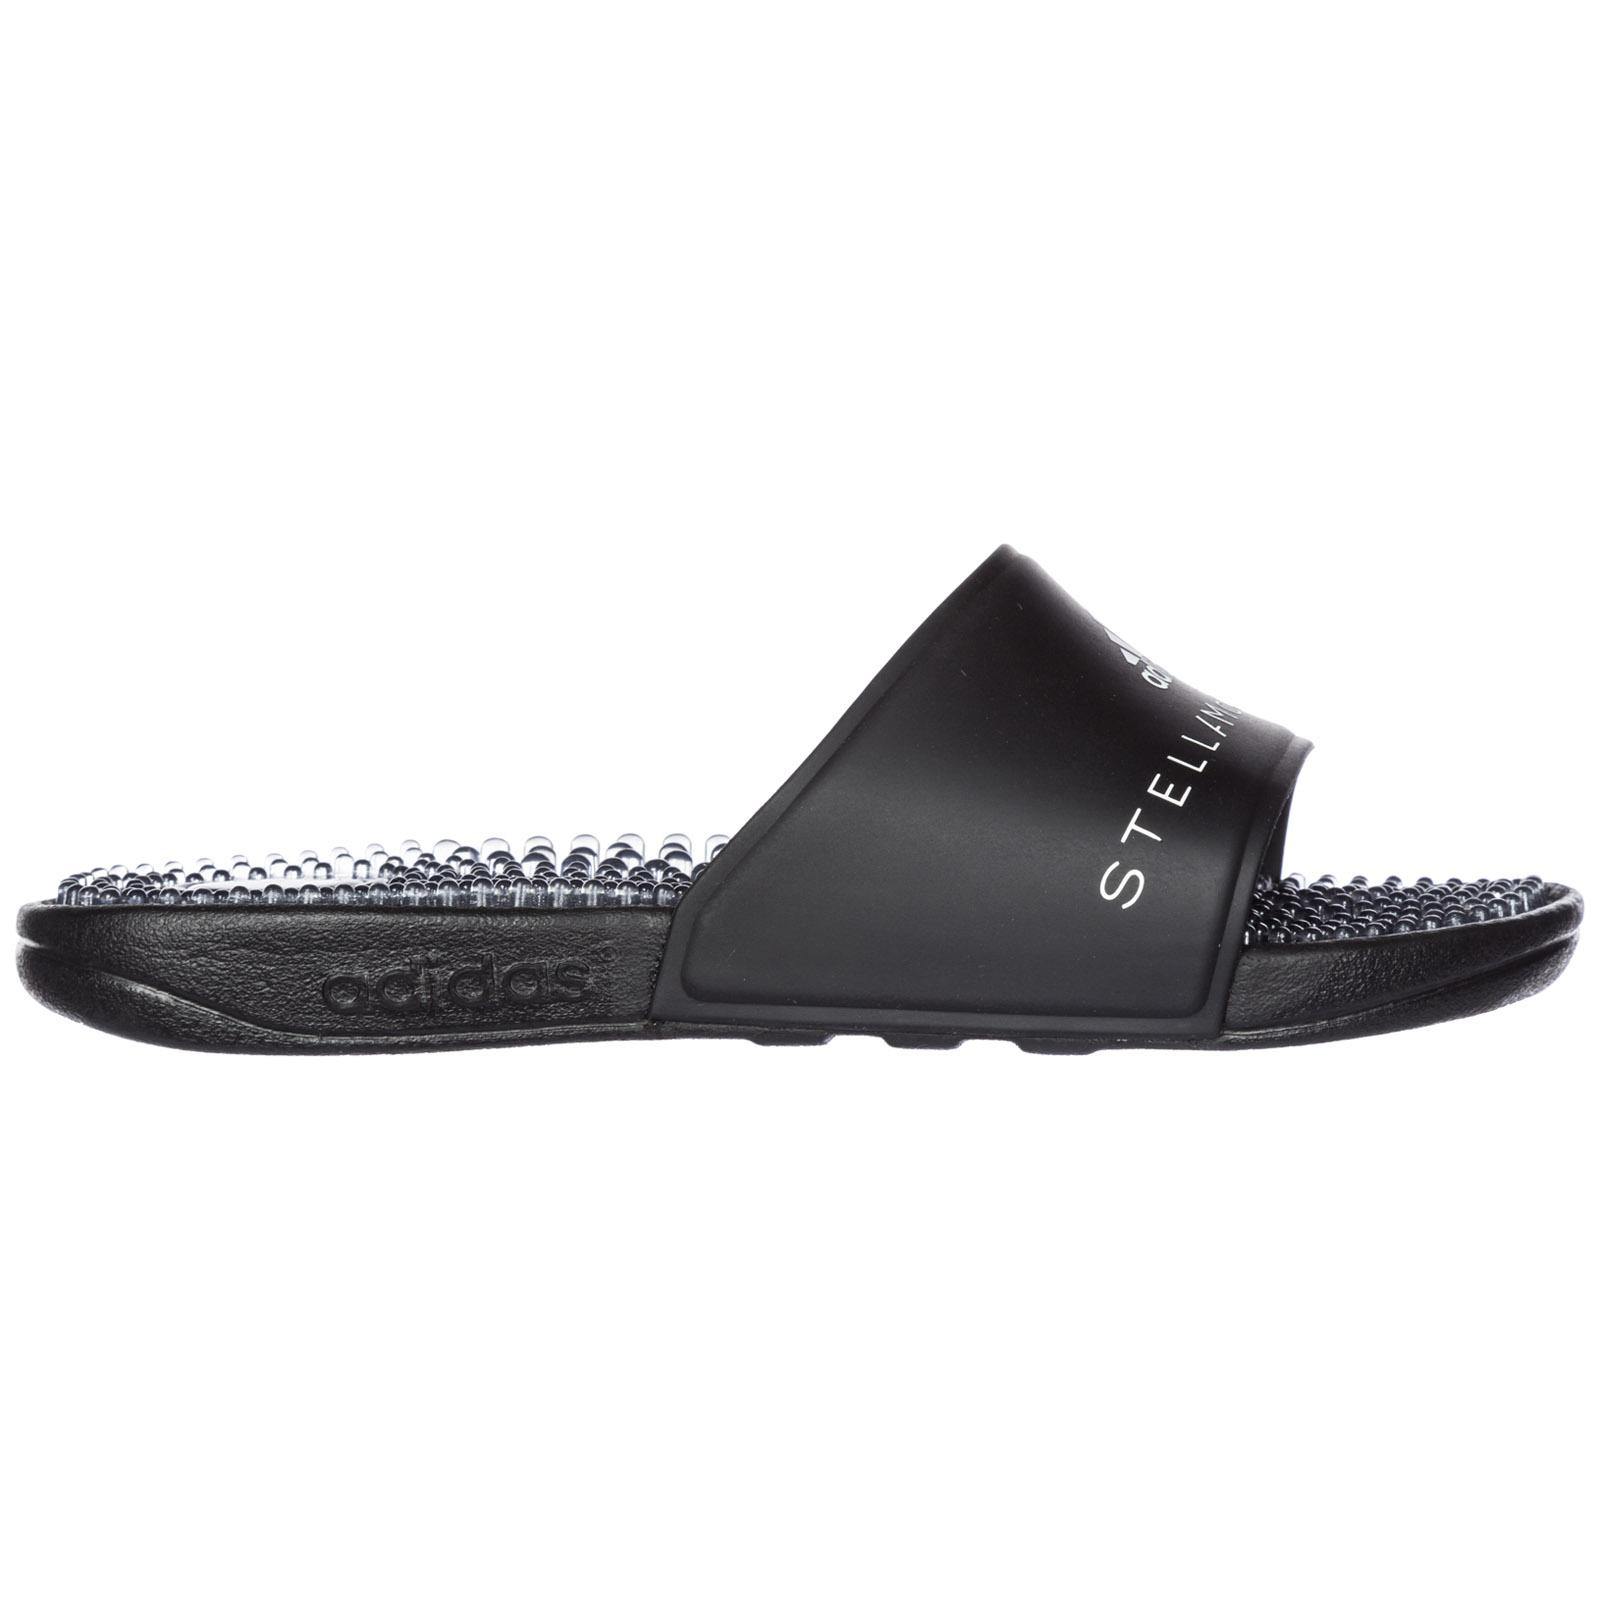 2f119f66d Adidas By Stella Mccartney Women s Rubber Slippers Sandals Adissage W In  Black